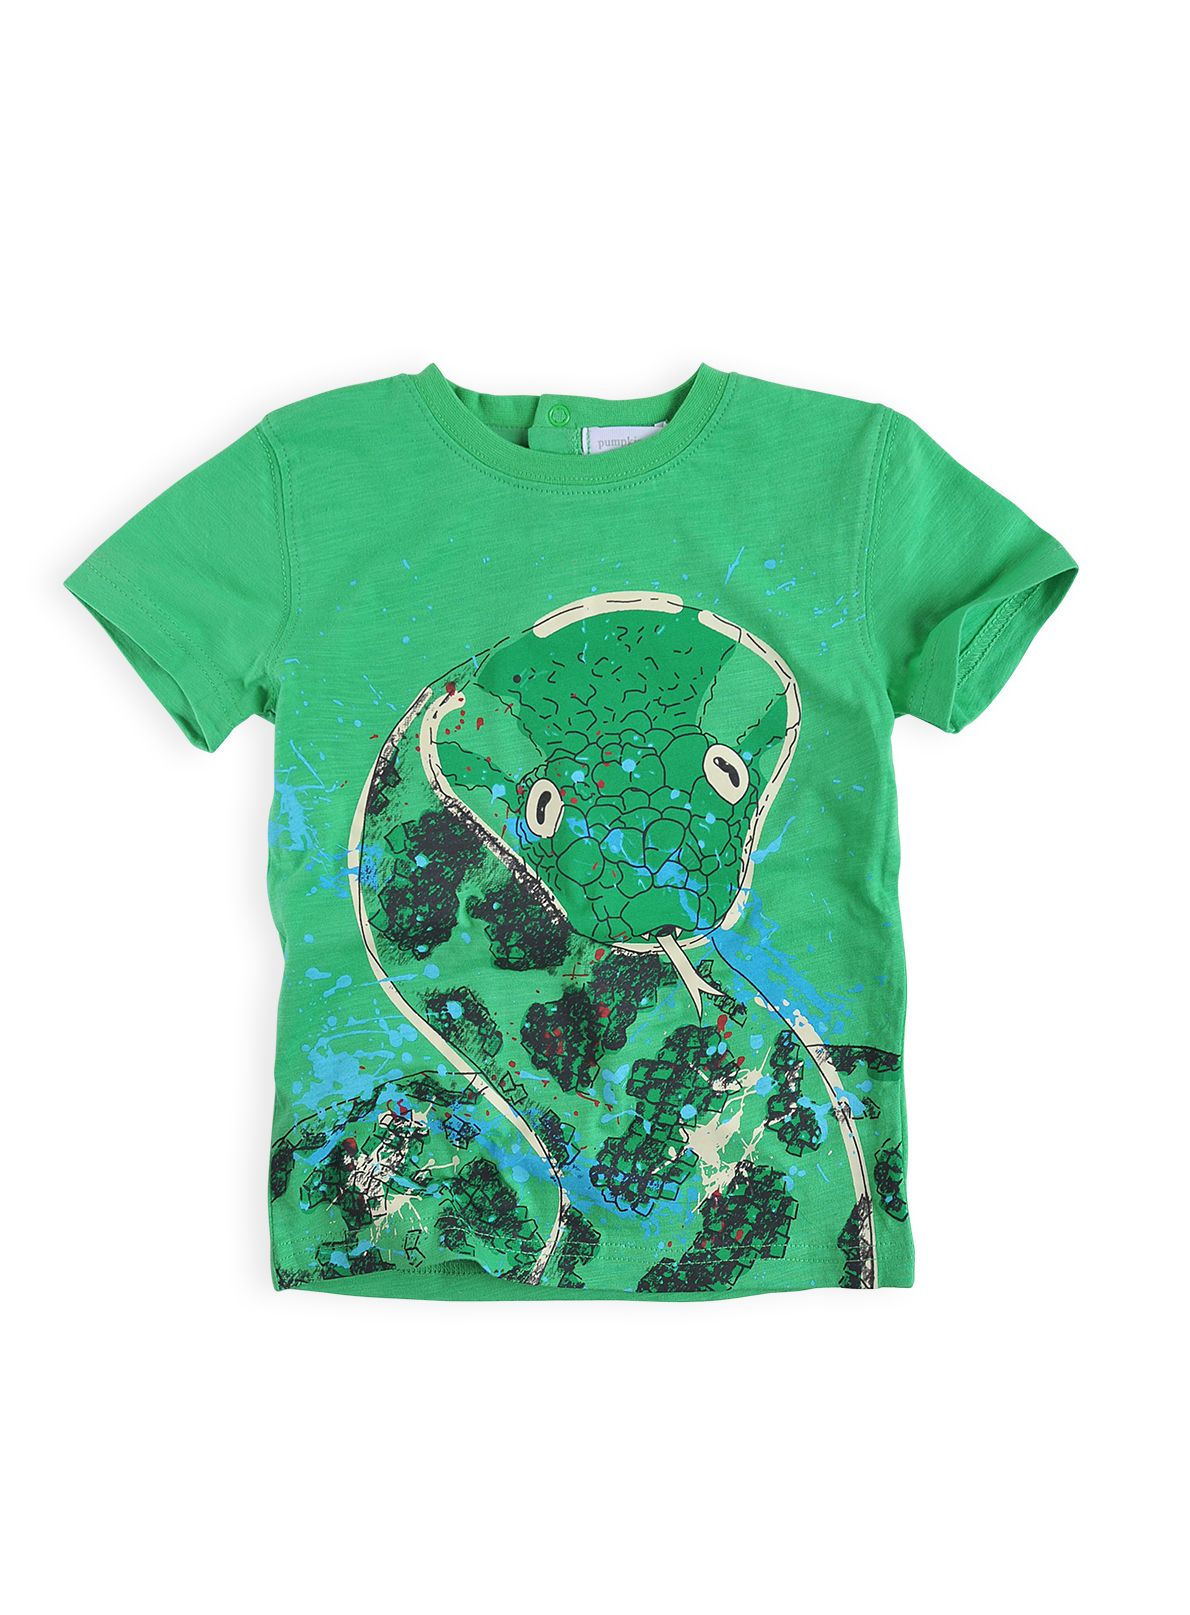 Boys glow in the dark short sleeve t-shirt